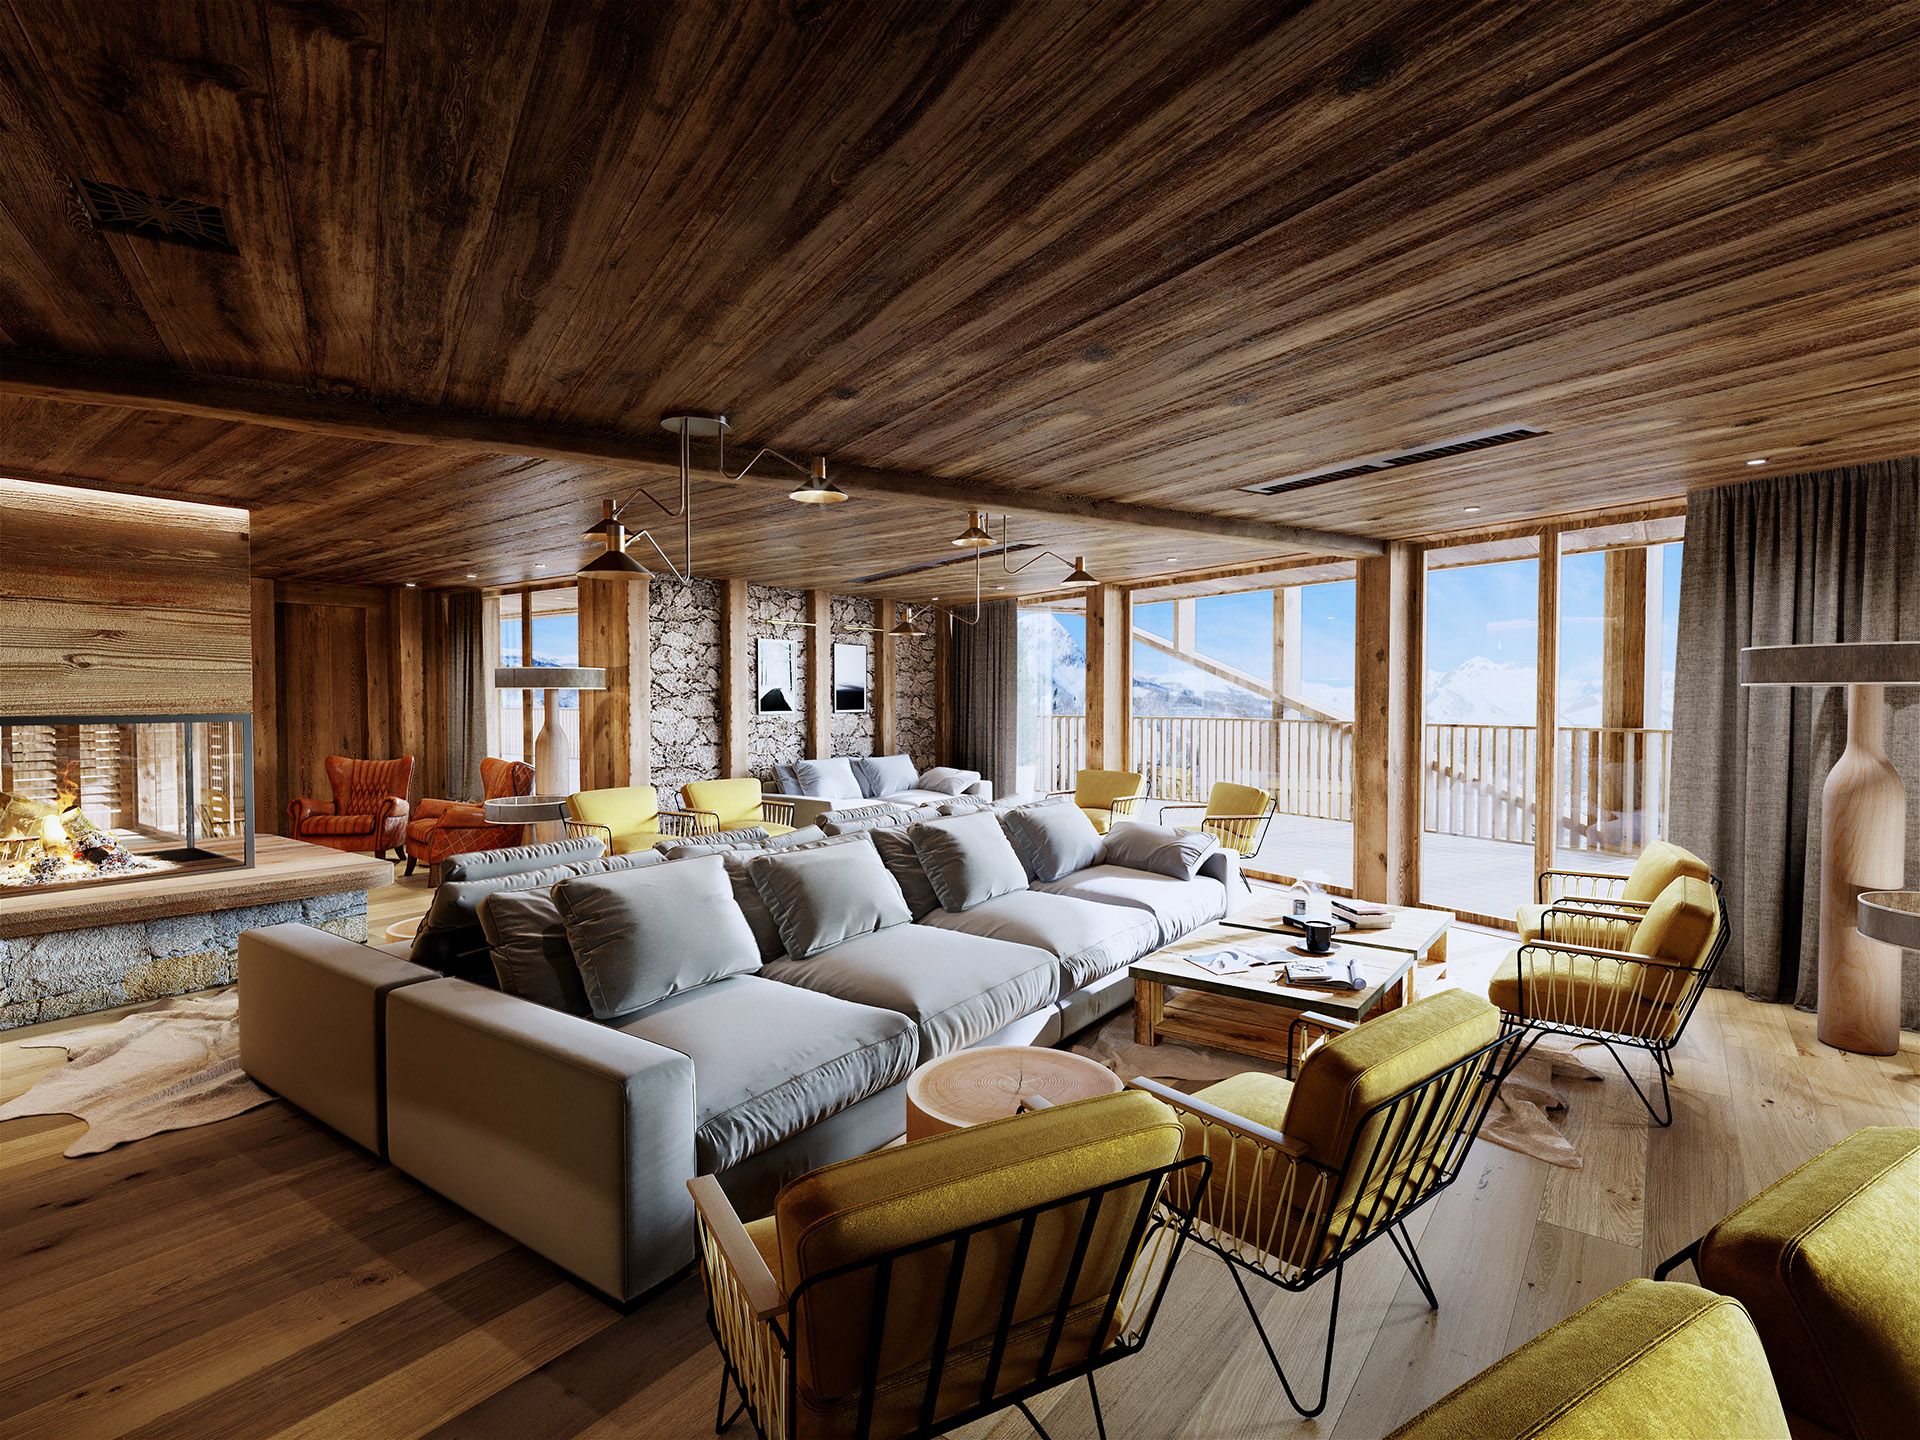 3D image of a lounge in a mountain chalet type hotel